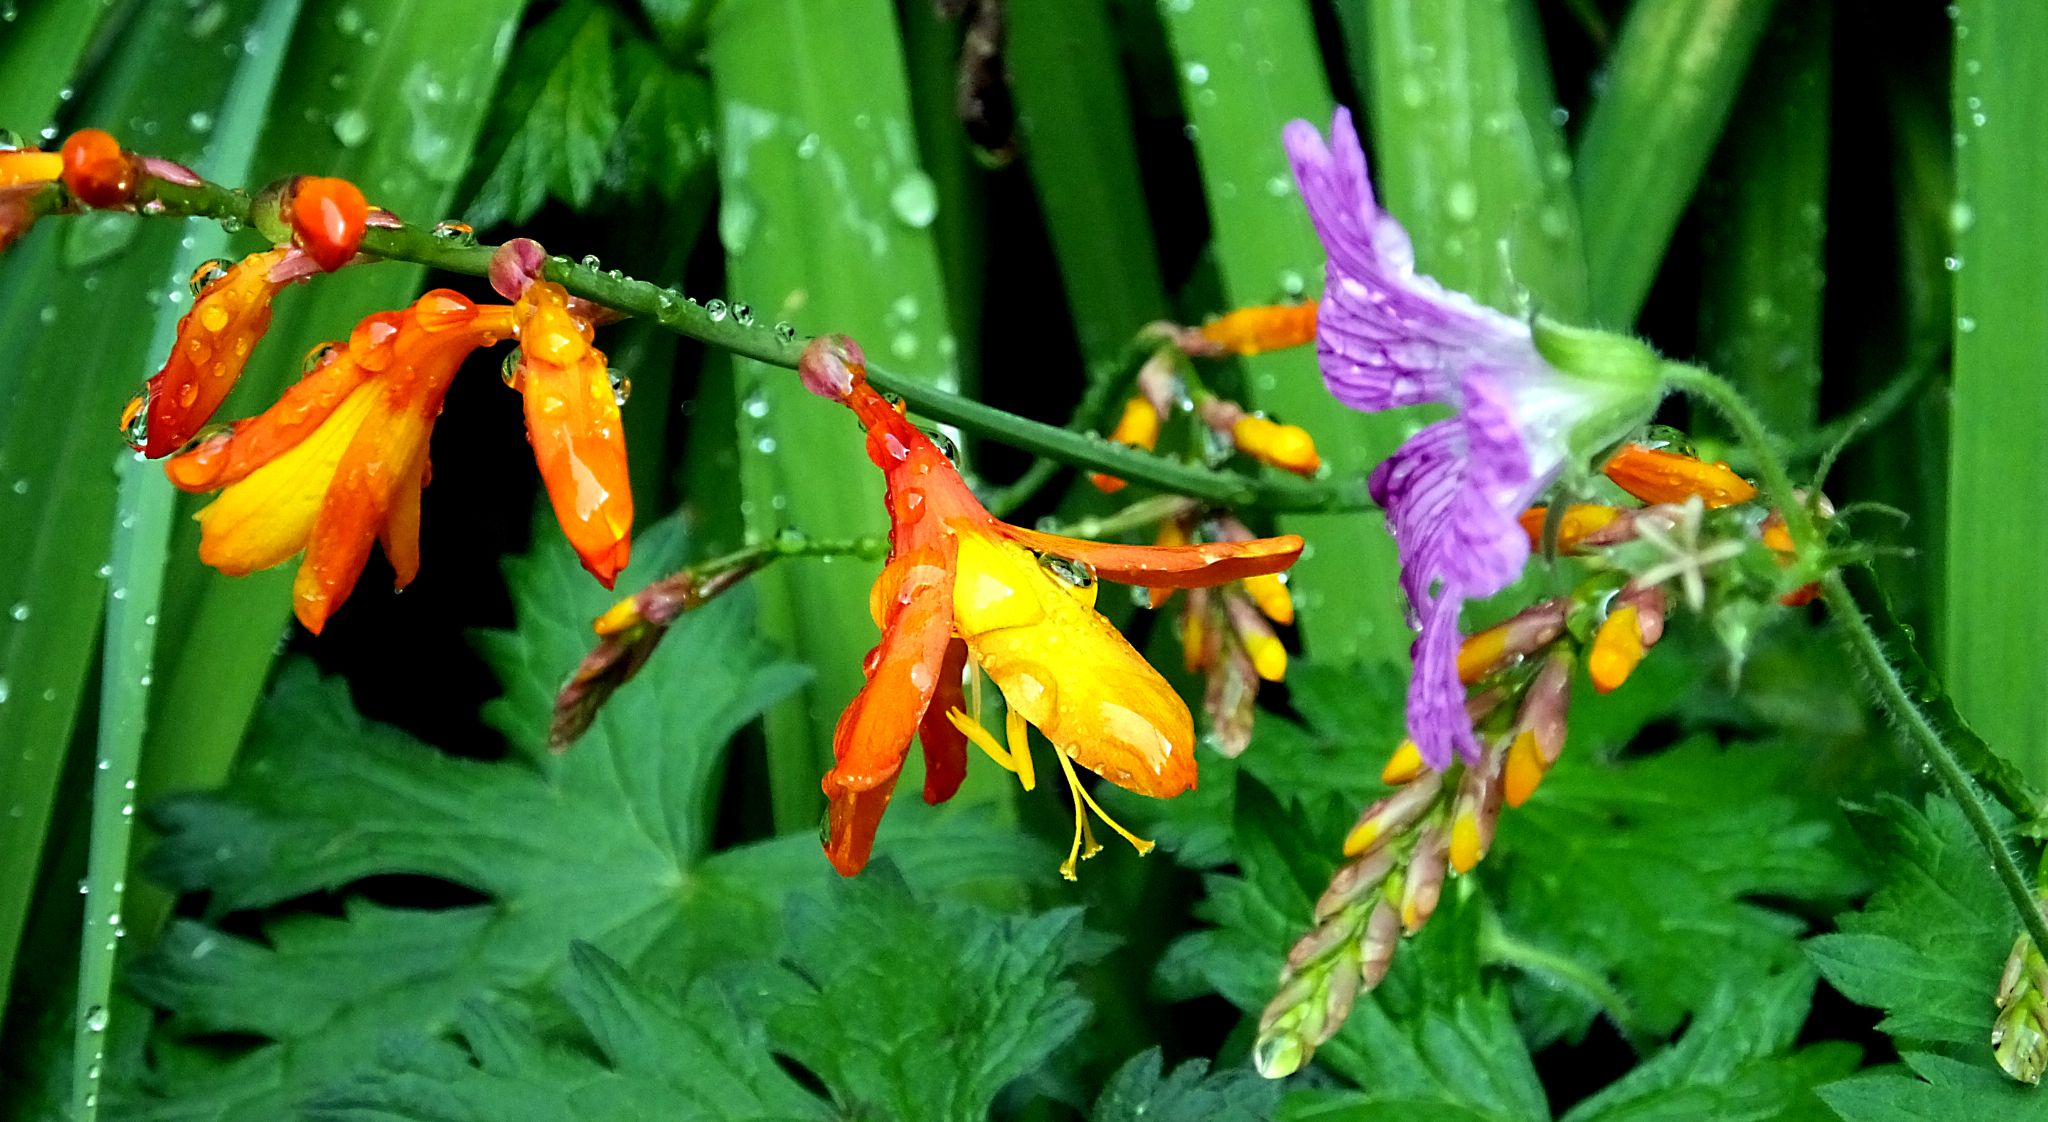 GHarden flowers and rain 2 by WhiteArtPhotography